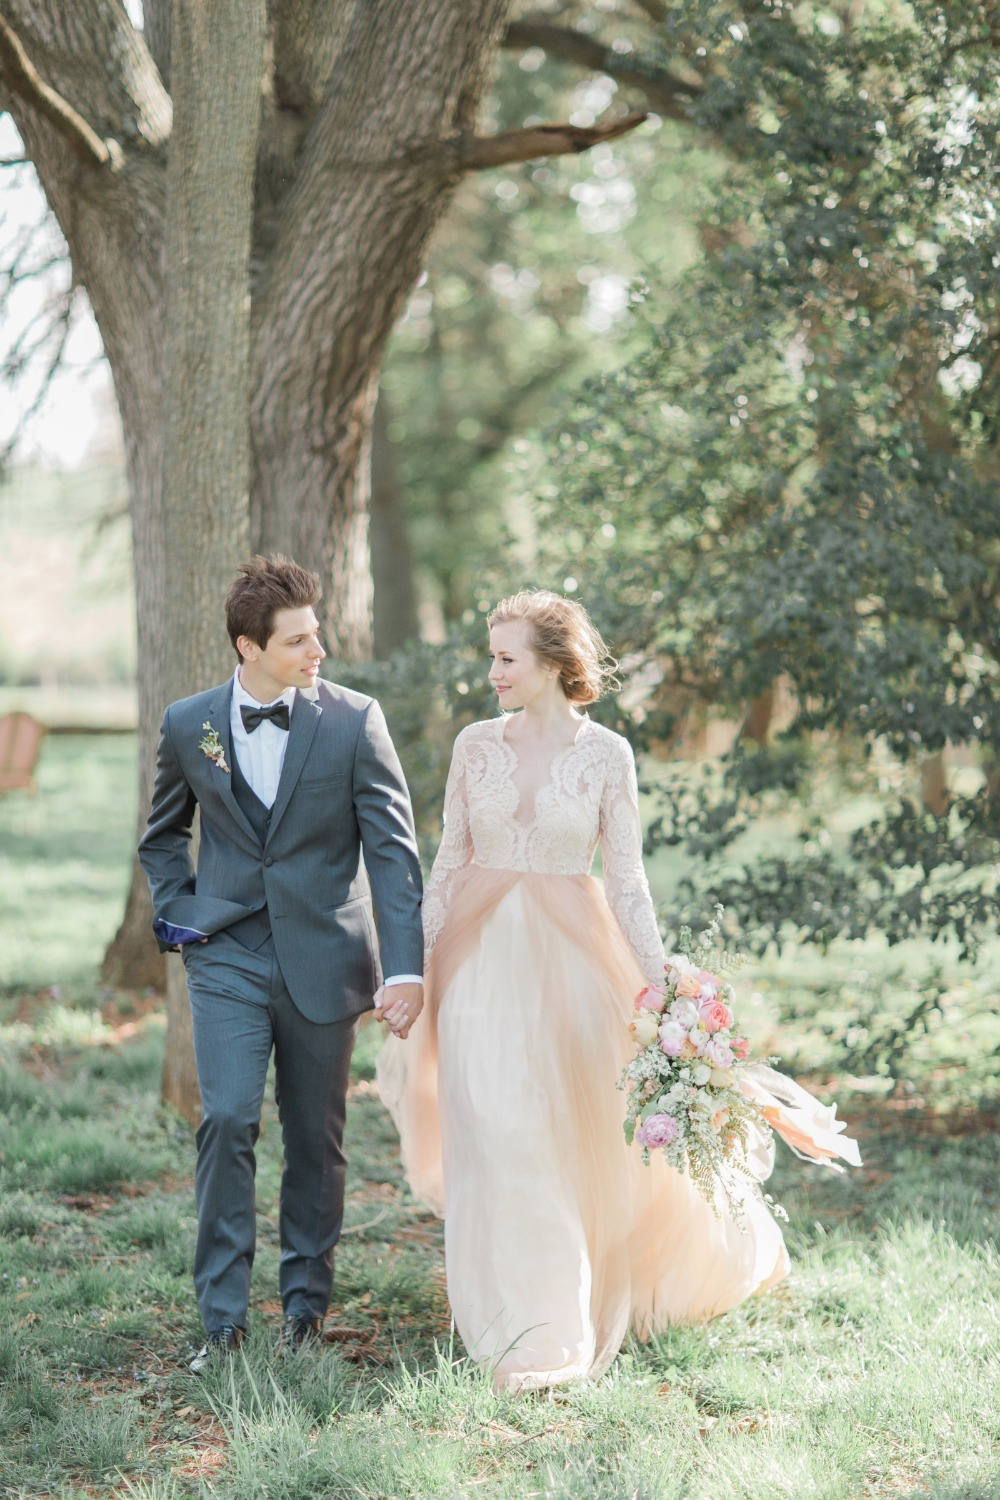 Blush and grey wedding style